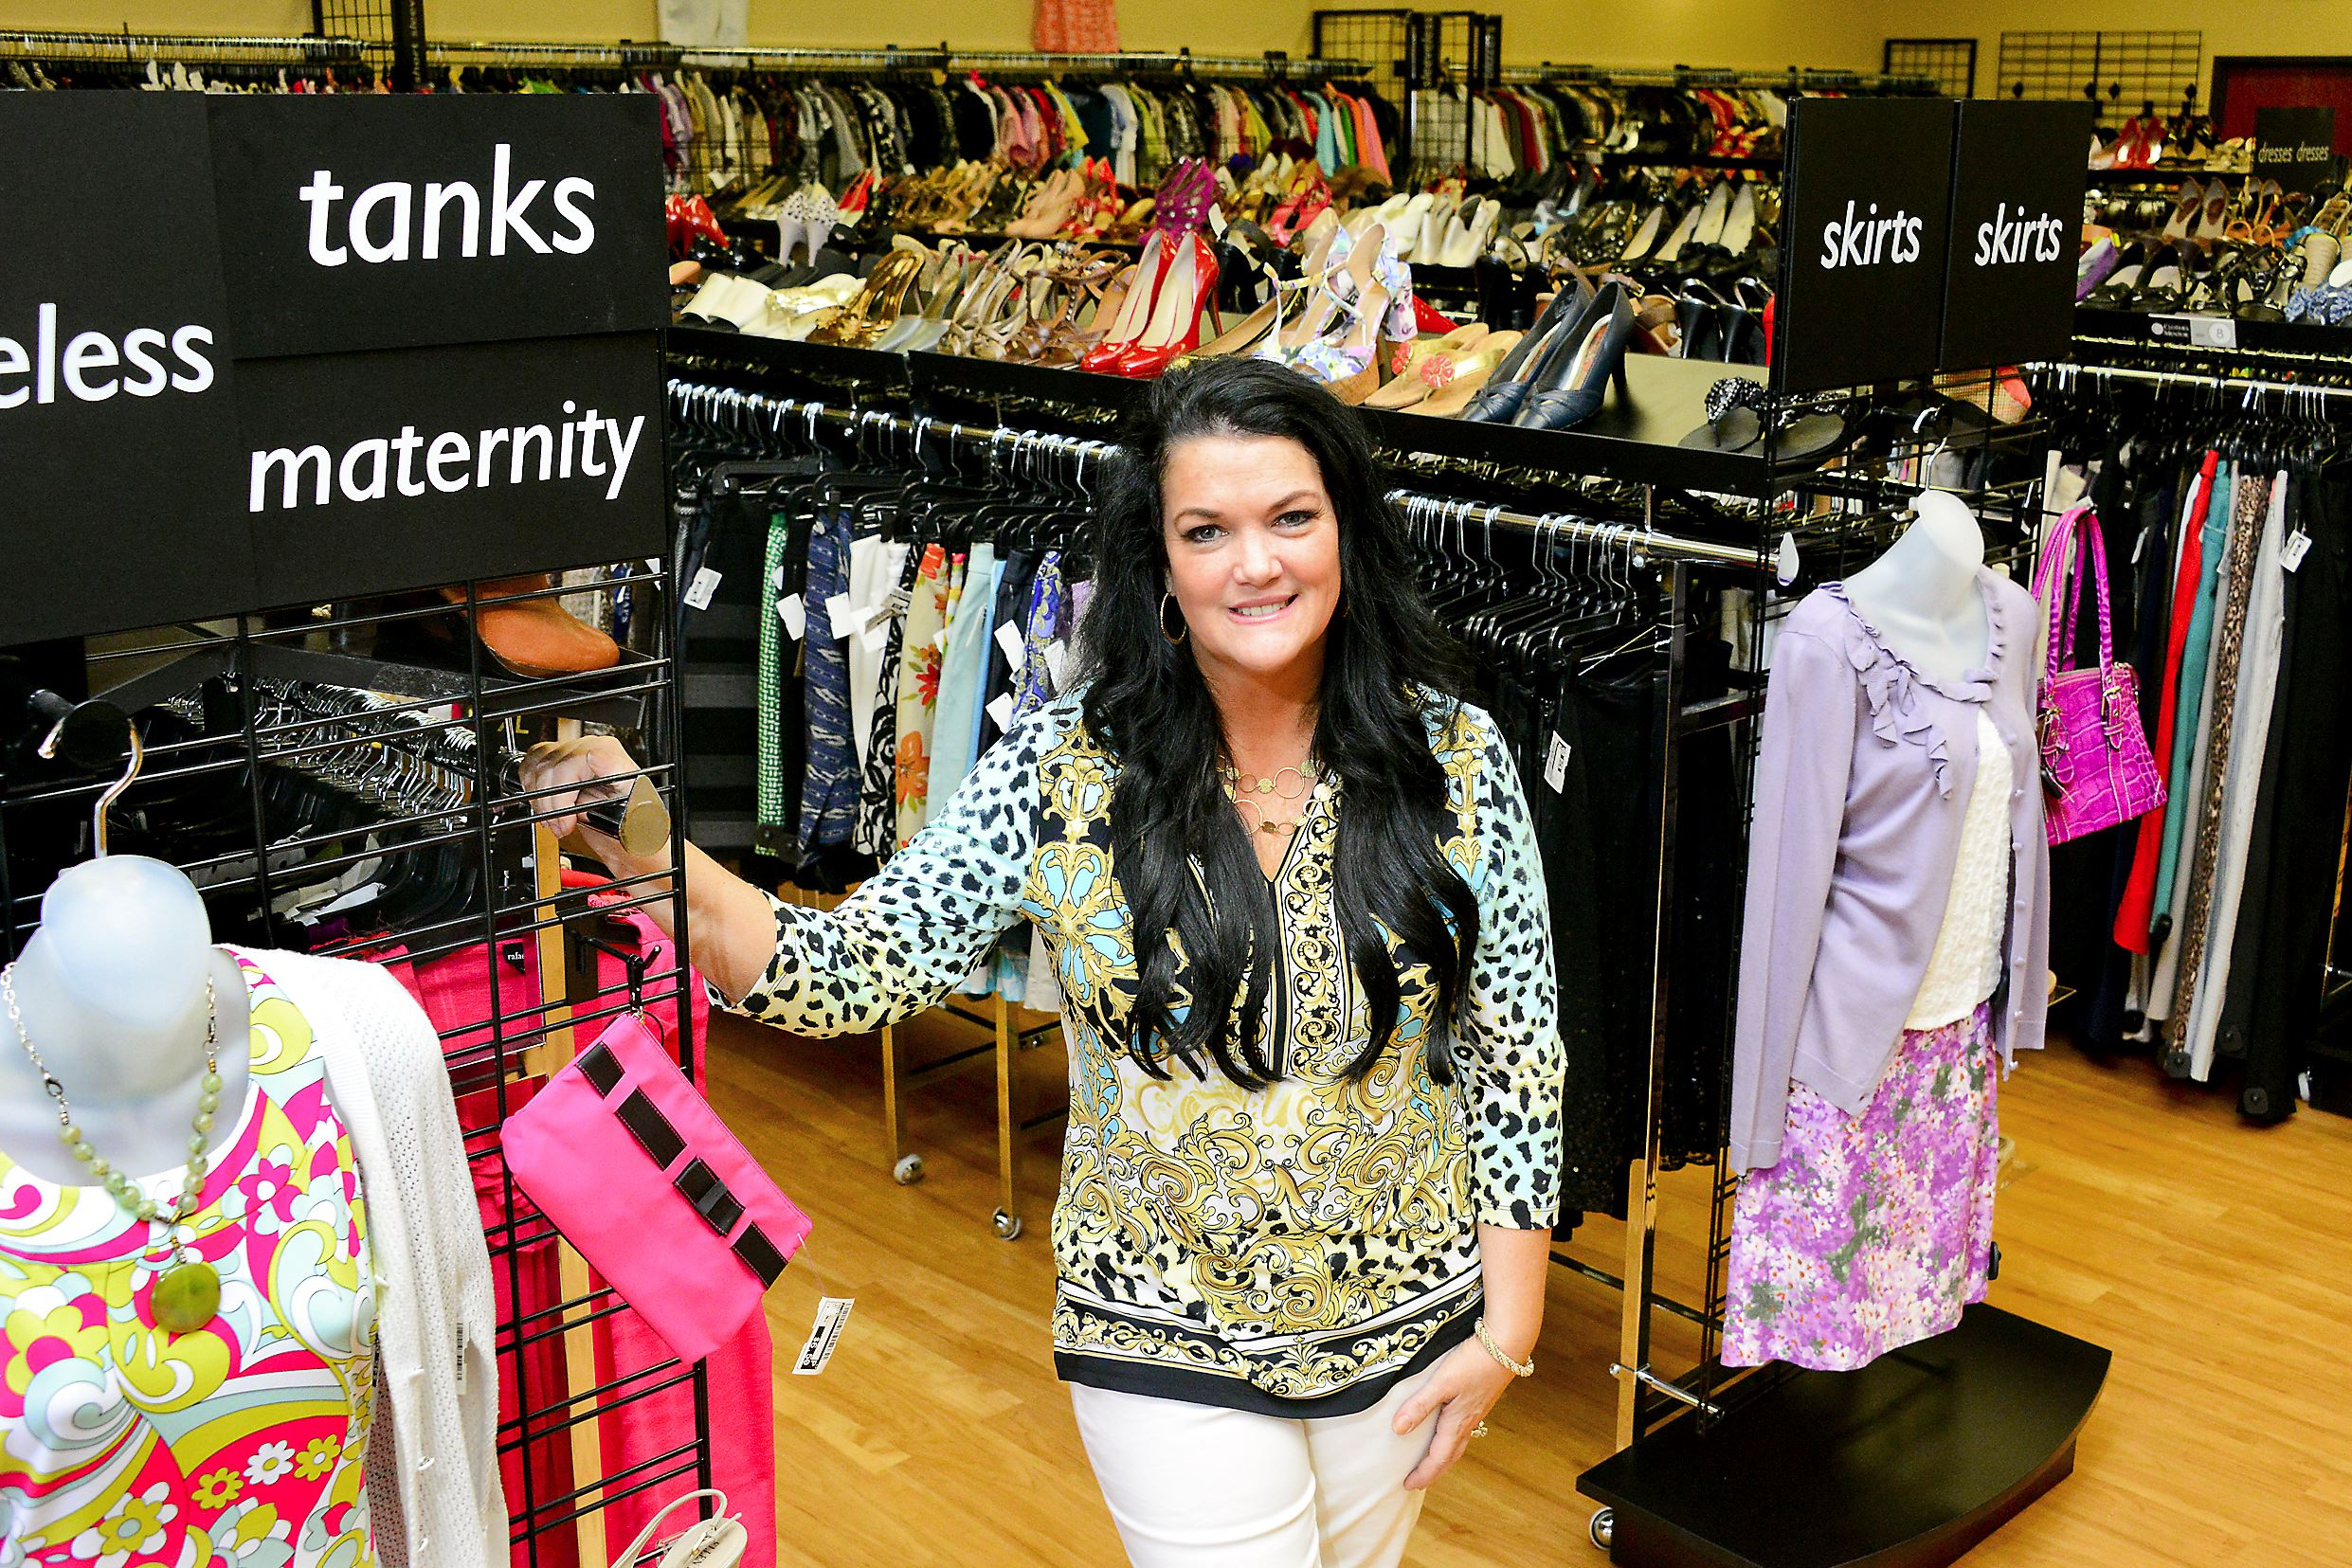 Superior Clothes Mentor Franchisee Andrea Zabinski Standing In Her Organized Store  Full Of Clothes Racks With Shelves